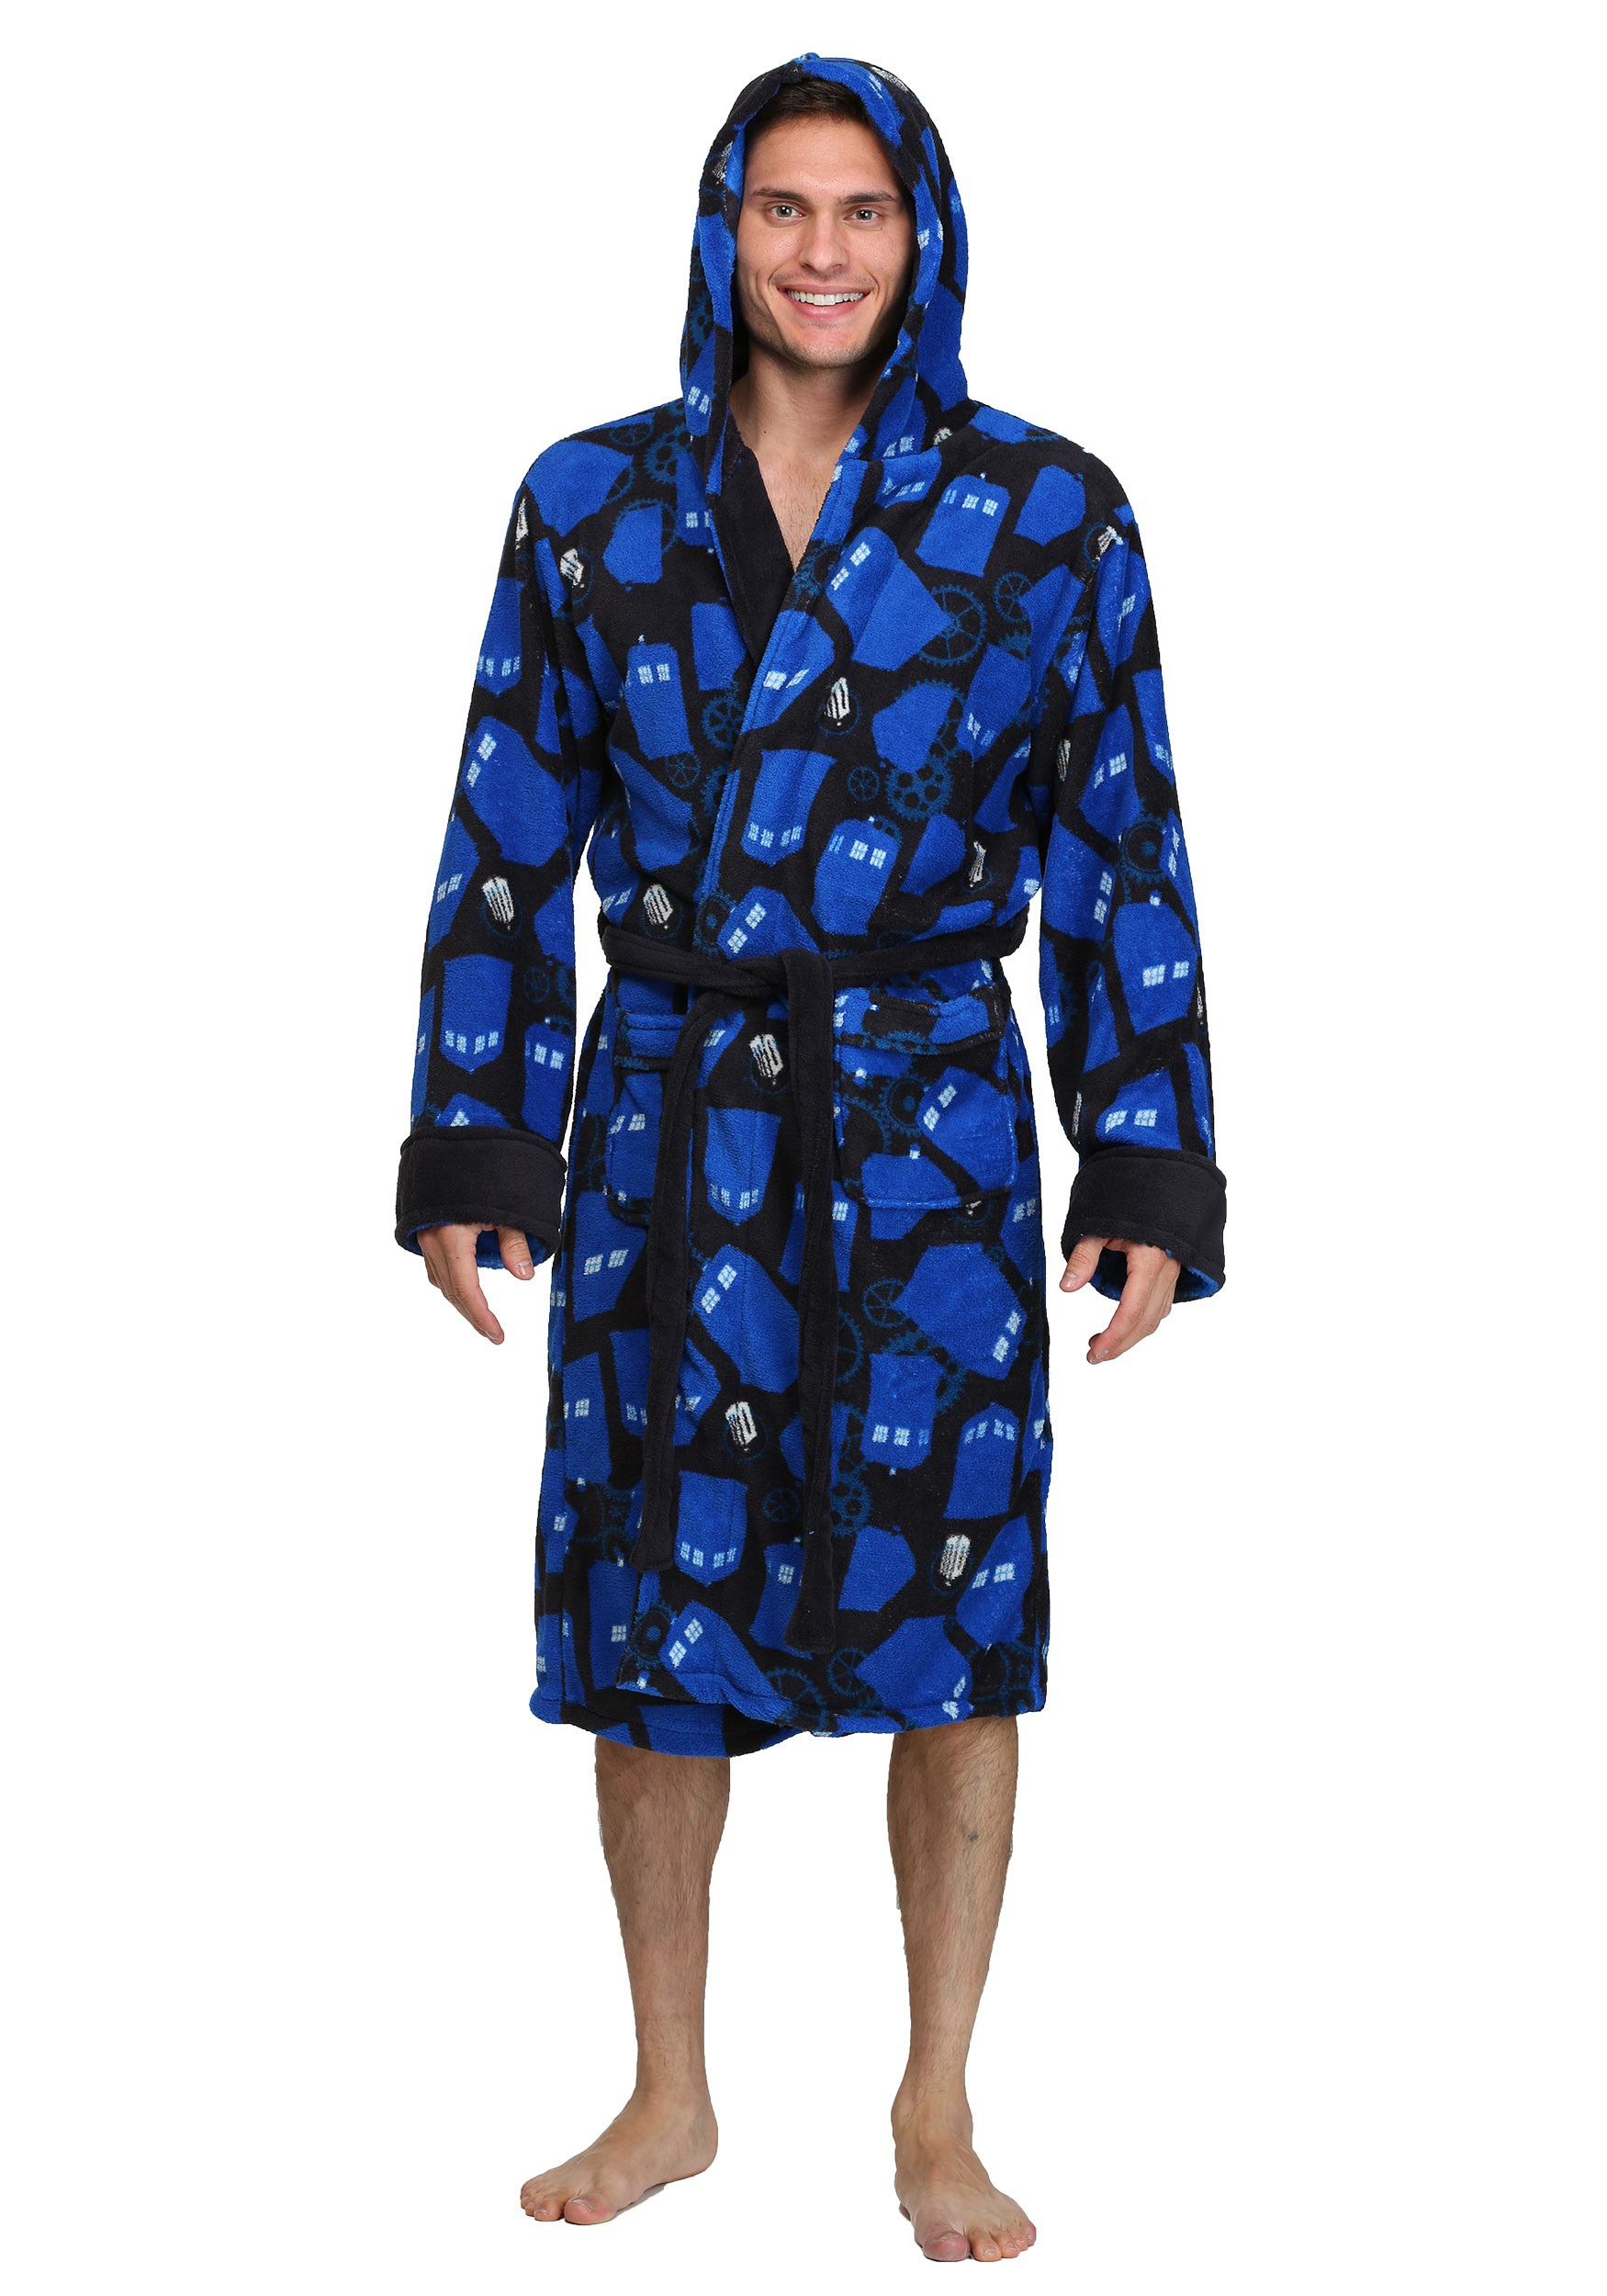 Doctor Who TARDIS and Gears Bathrobe